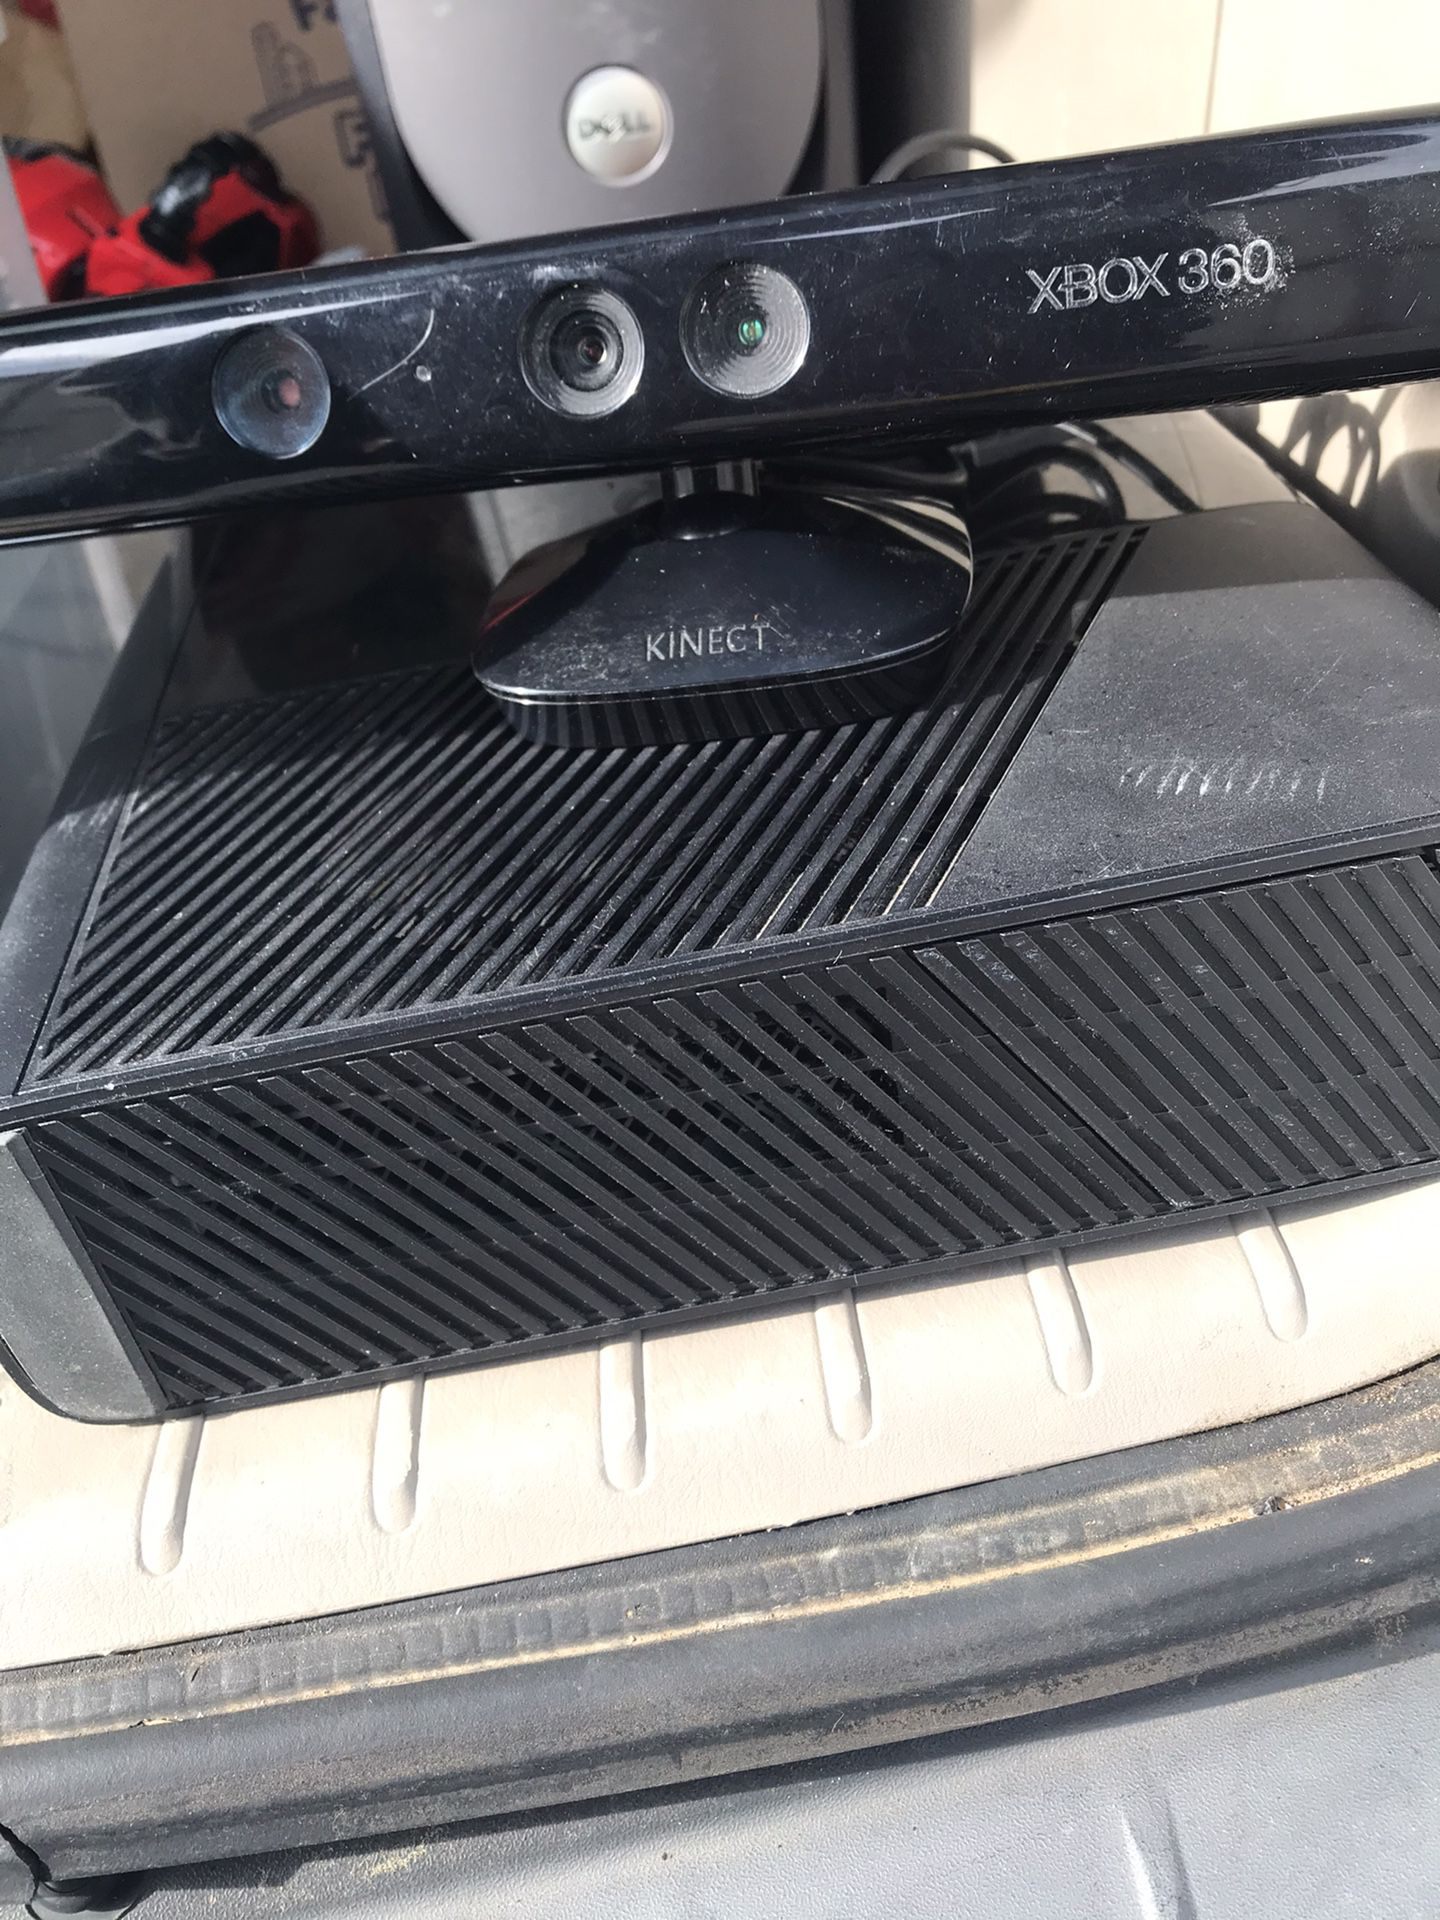 Xbox 360 S Complete System